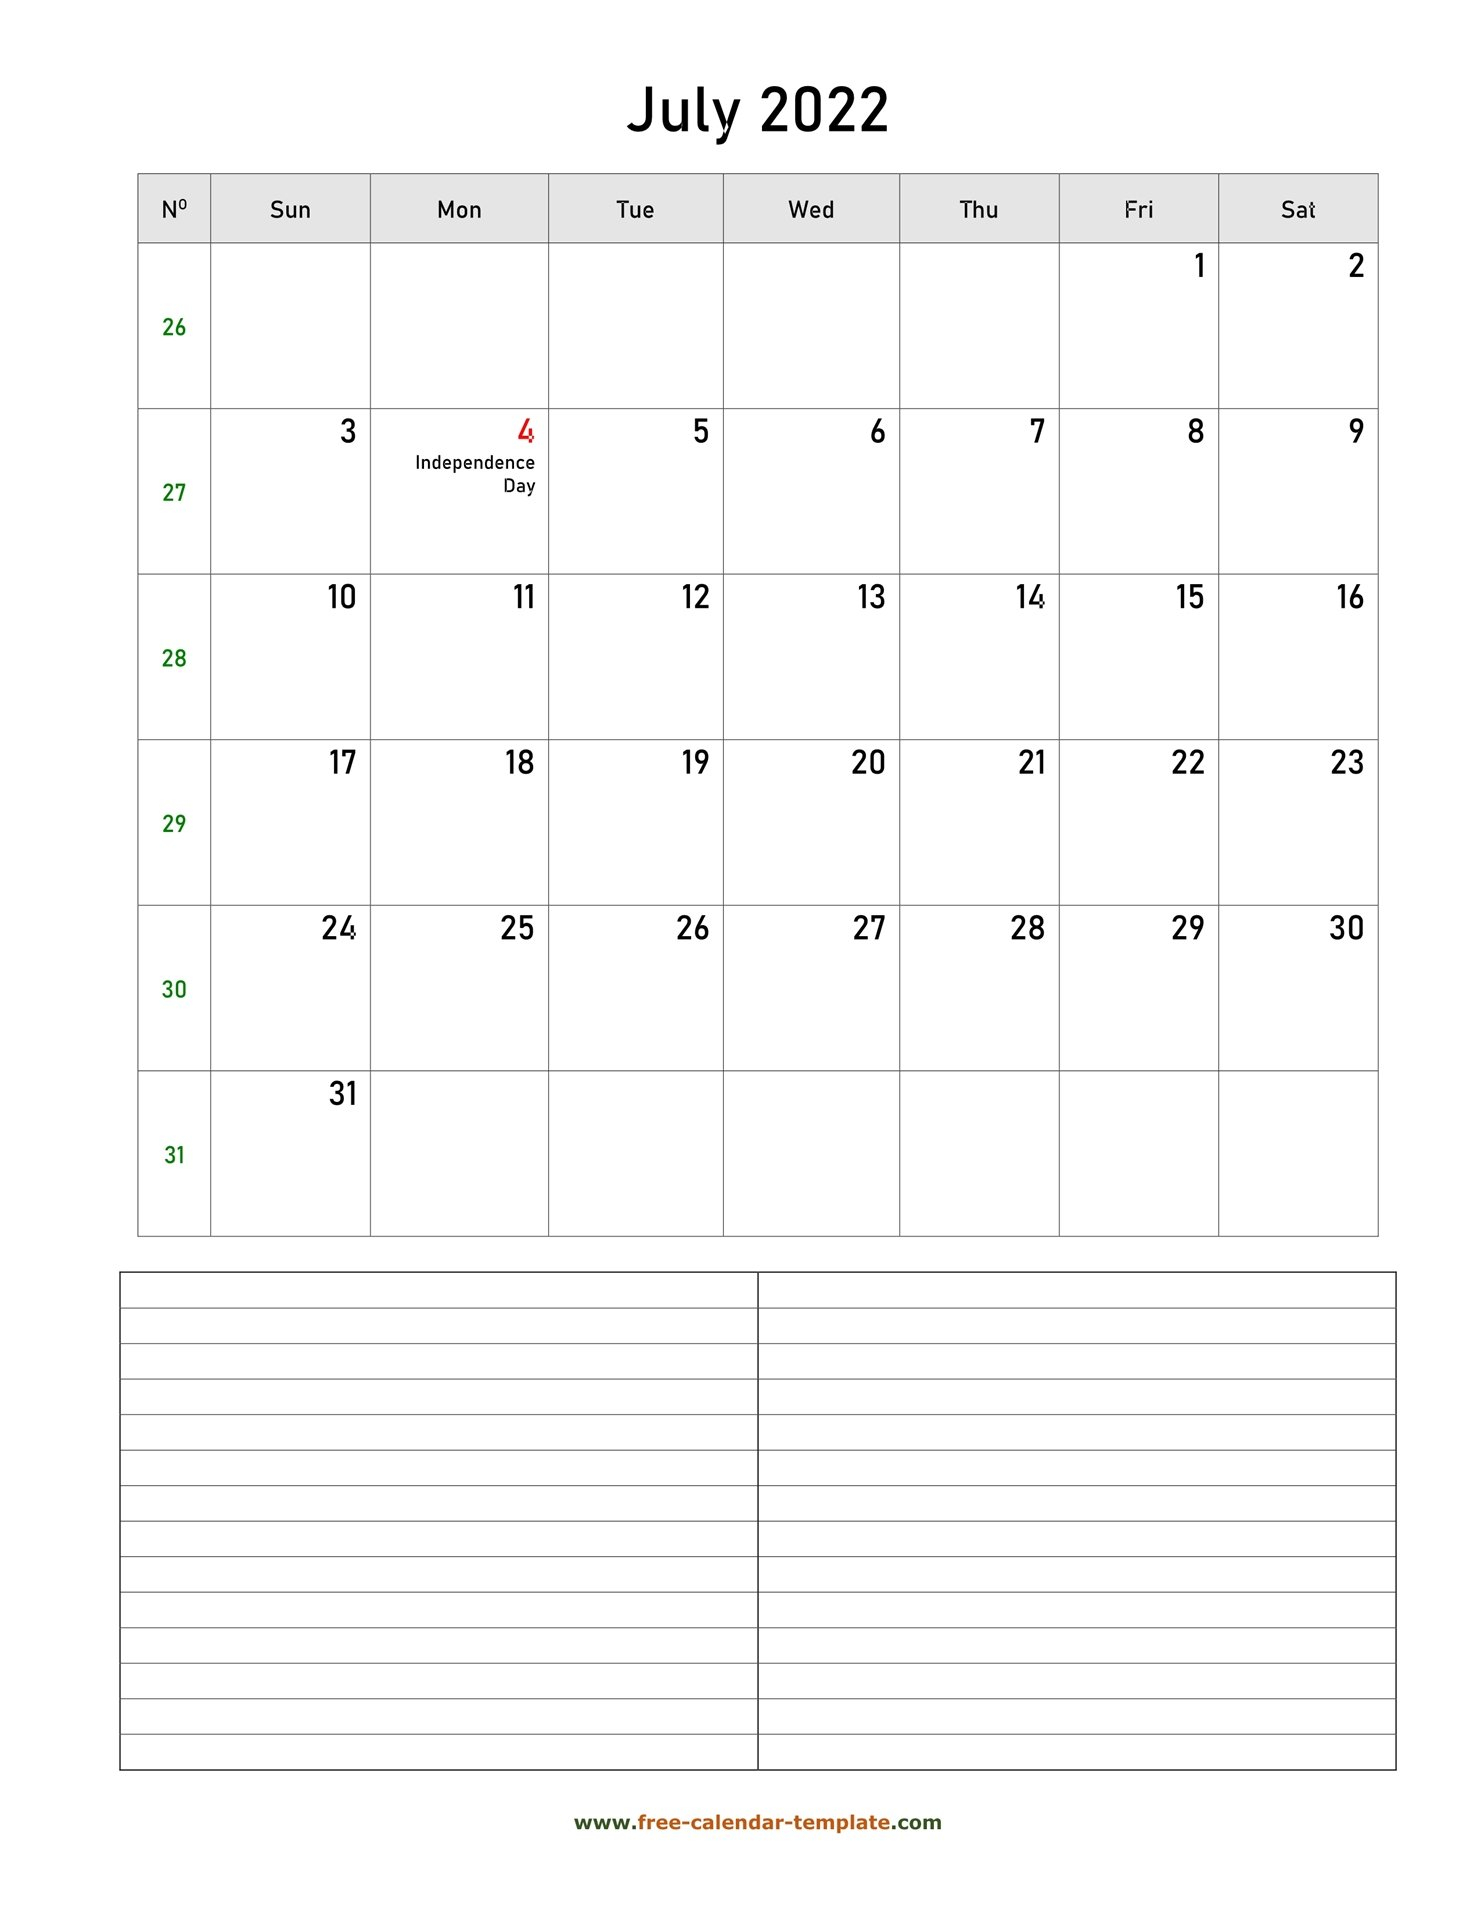 Printable July 2022 Calendar With Space For Appointments intended for Blank Calendar Template July 2022 Image